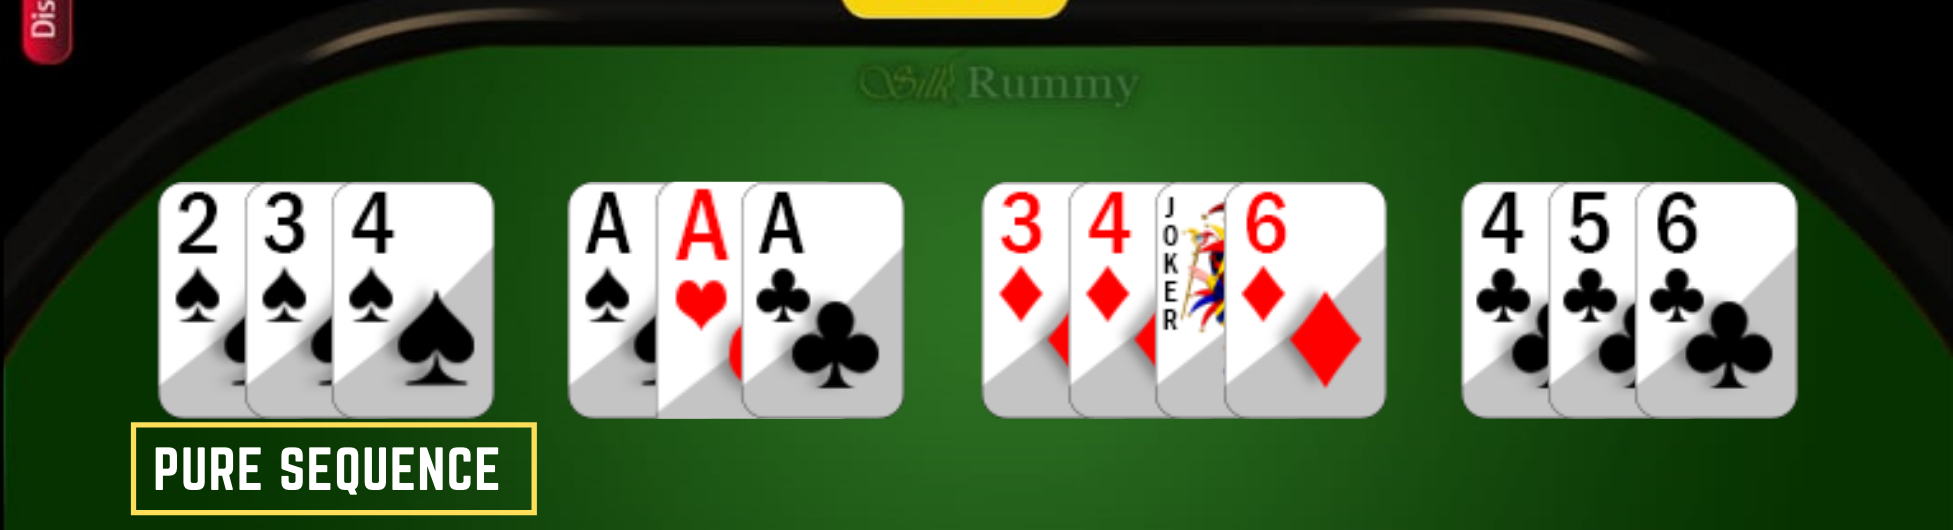 How to play Rummy rules- Rummy Pure Sequence with 3 cards